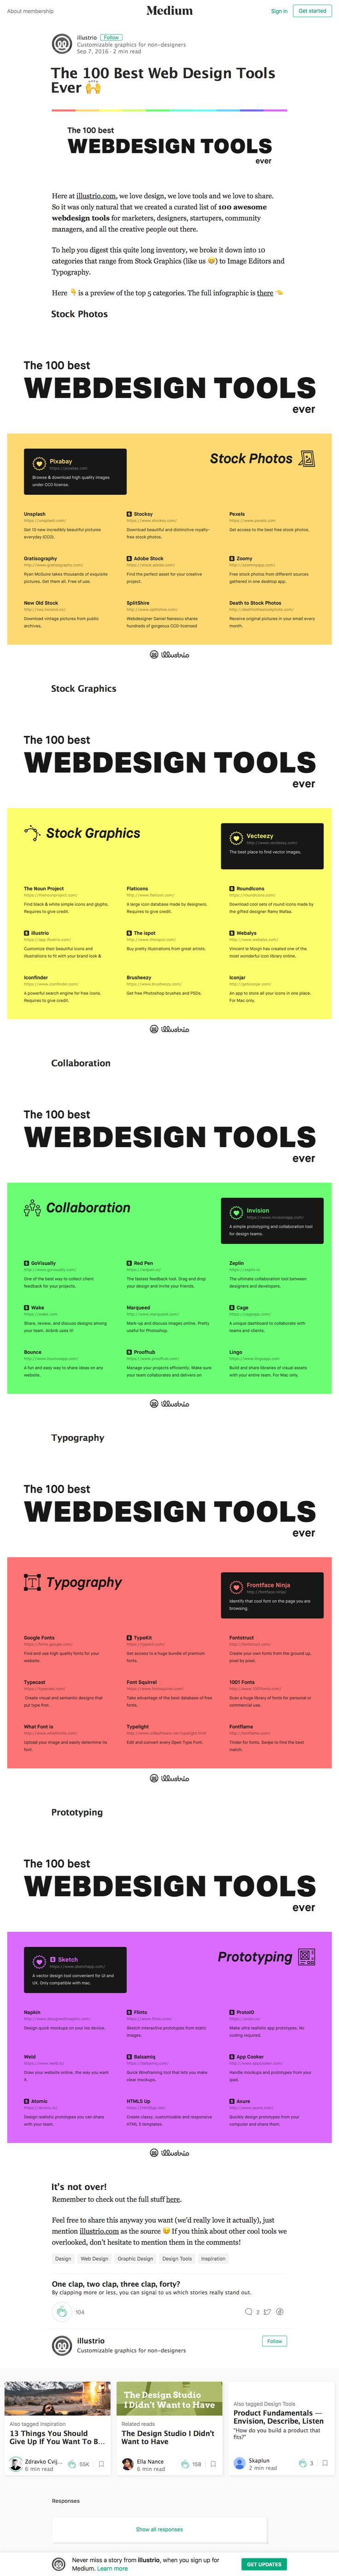 iTips: 100 Best Web Design Tools - infographic by Medium 2016-09-07